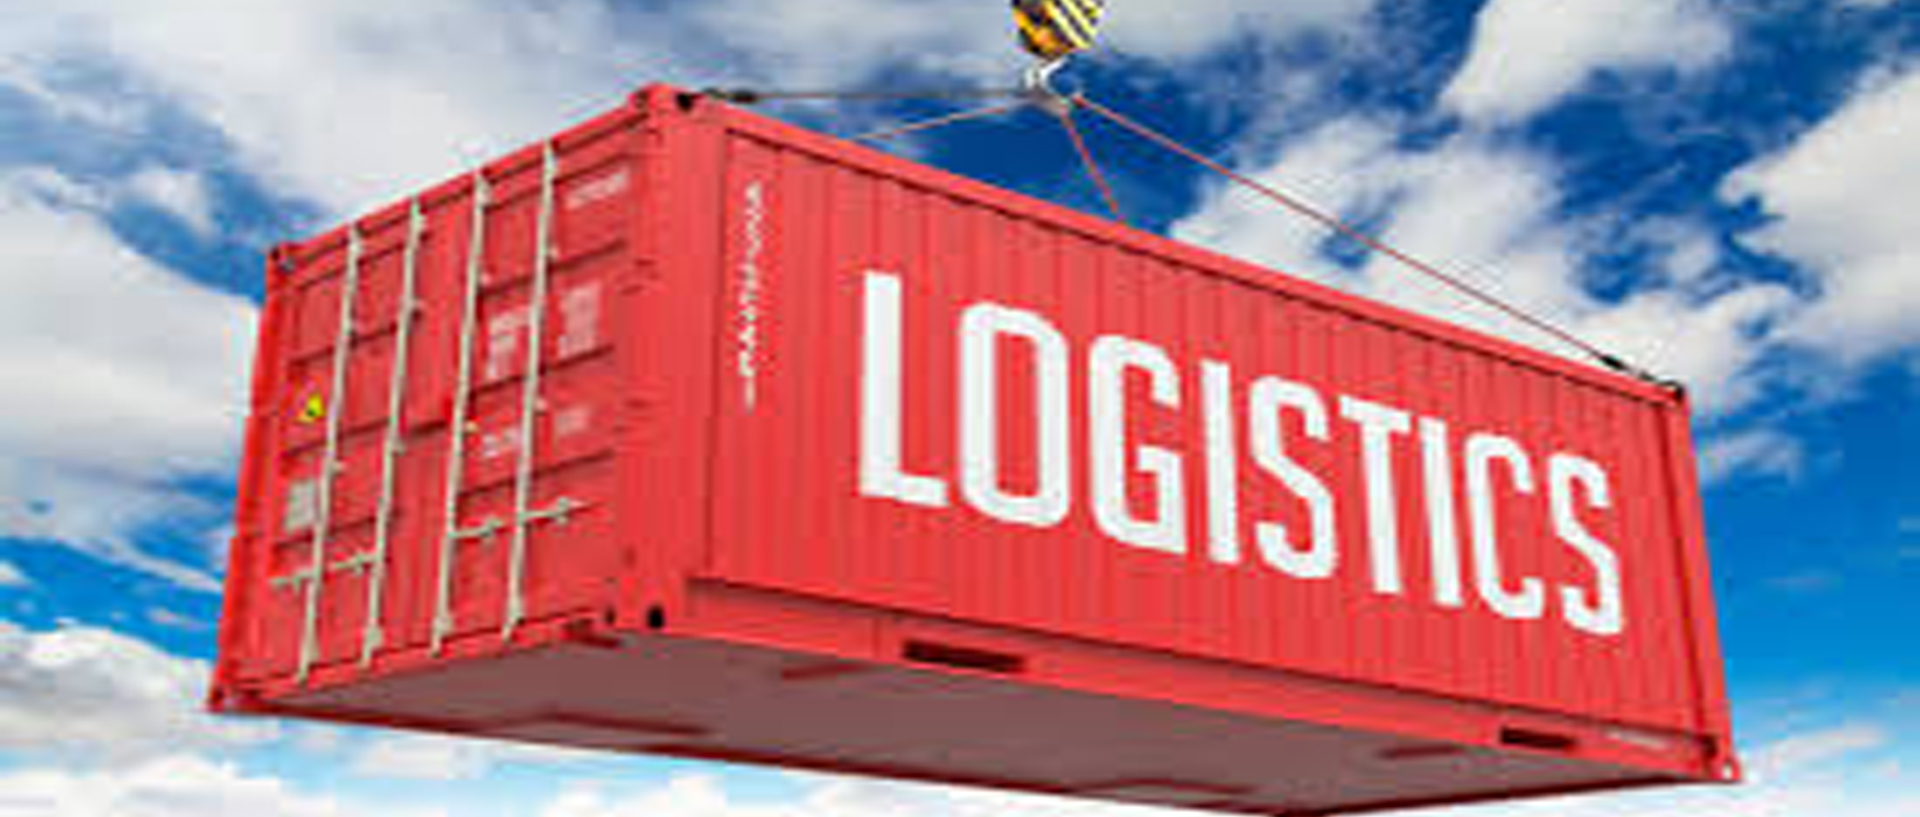 logistics industry barriers to entry Barriers to entry prevent potential competitors from entering the market some barriers  telecommunications and international logistics are the two industries.